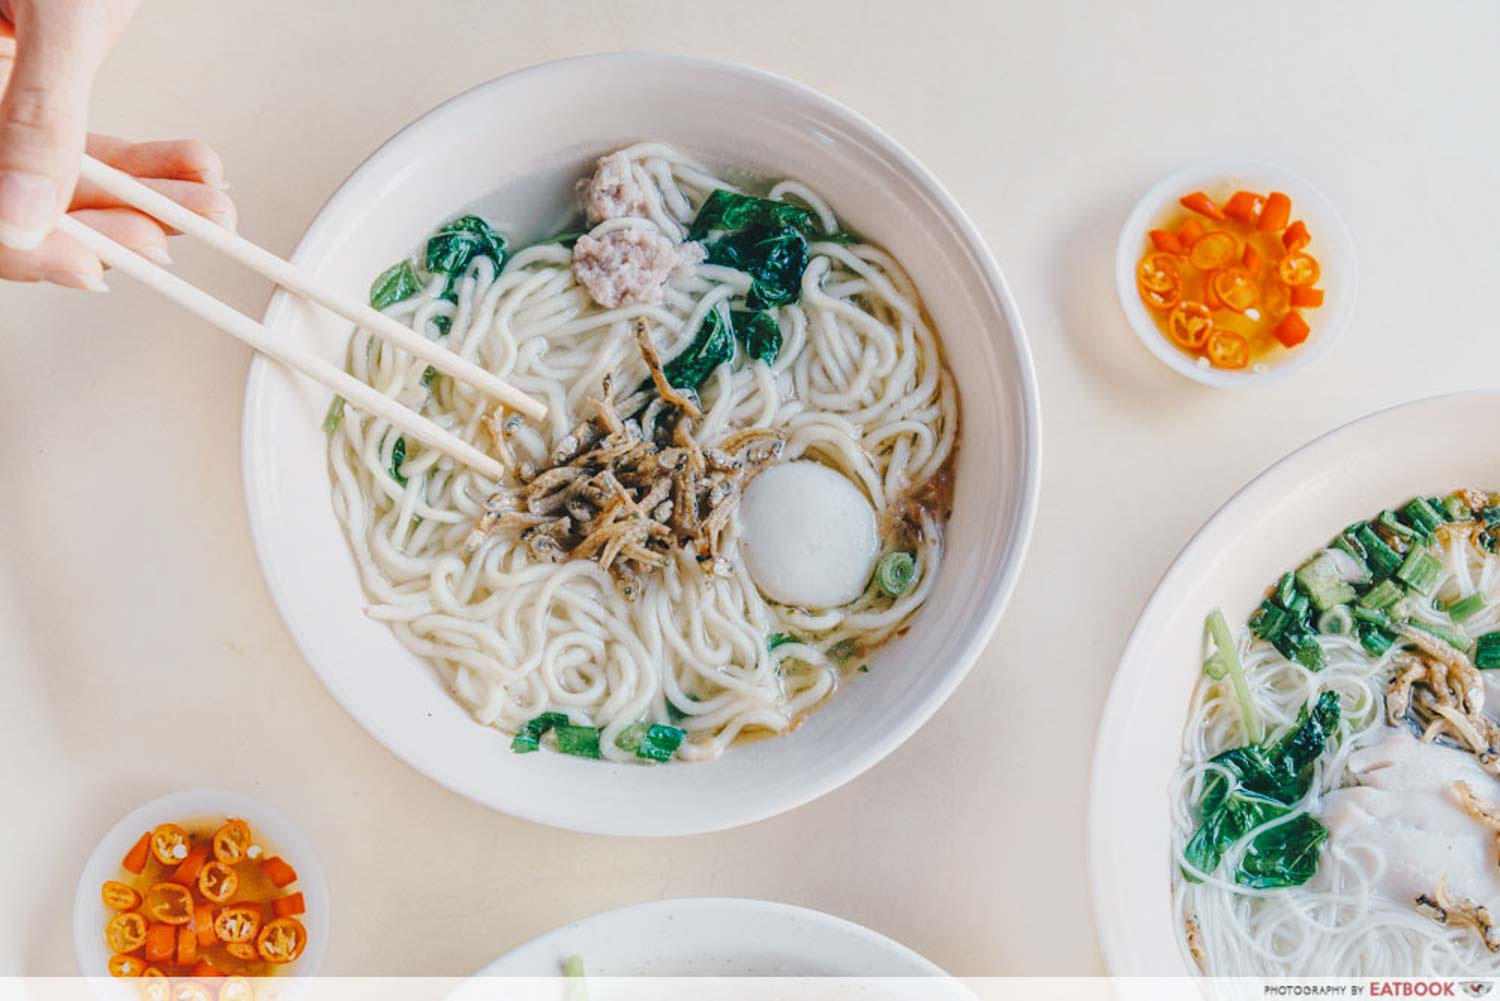 Dishes Under $2 - Soup Yu Mian